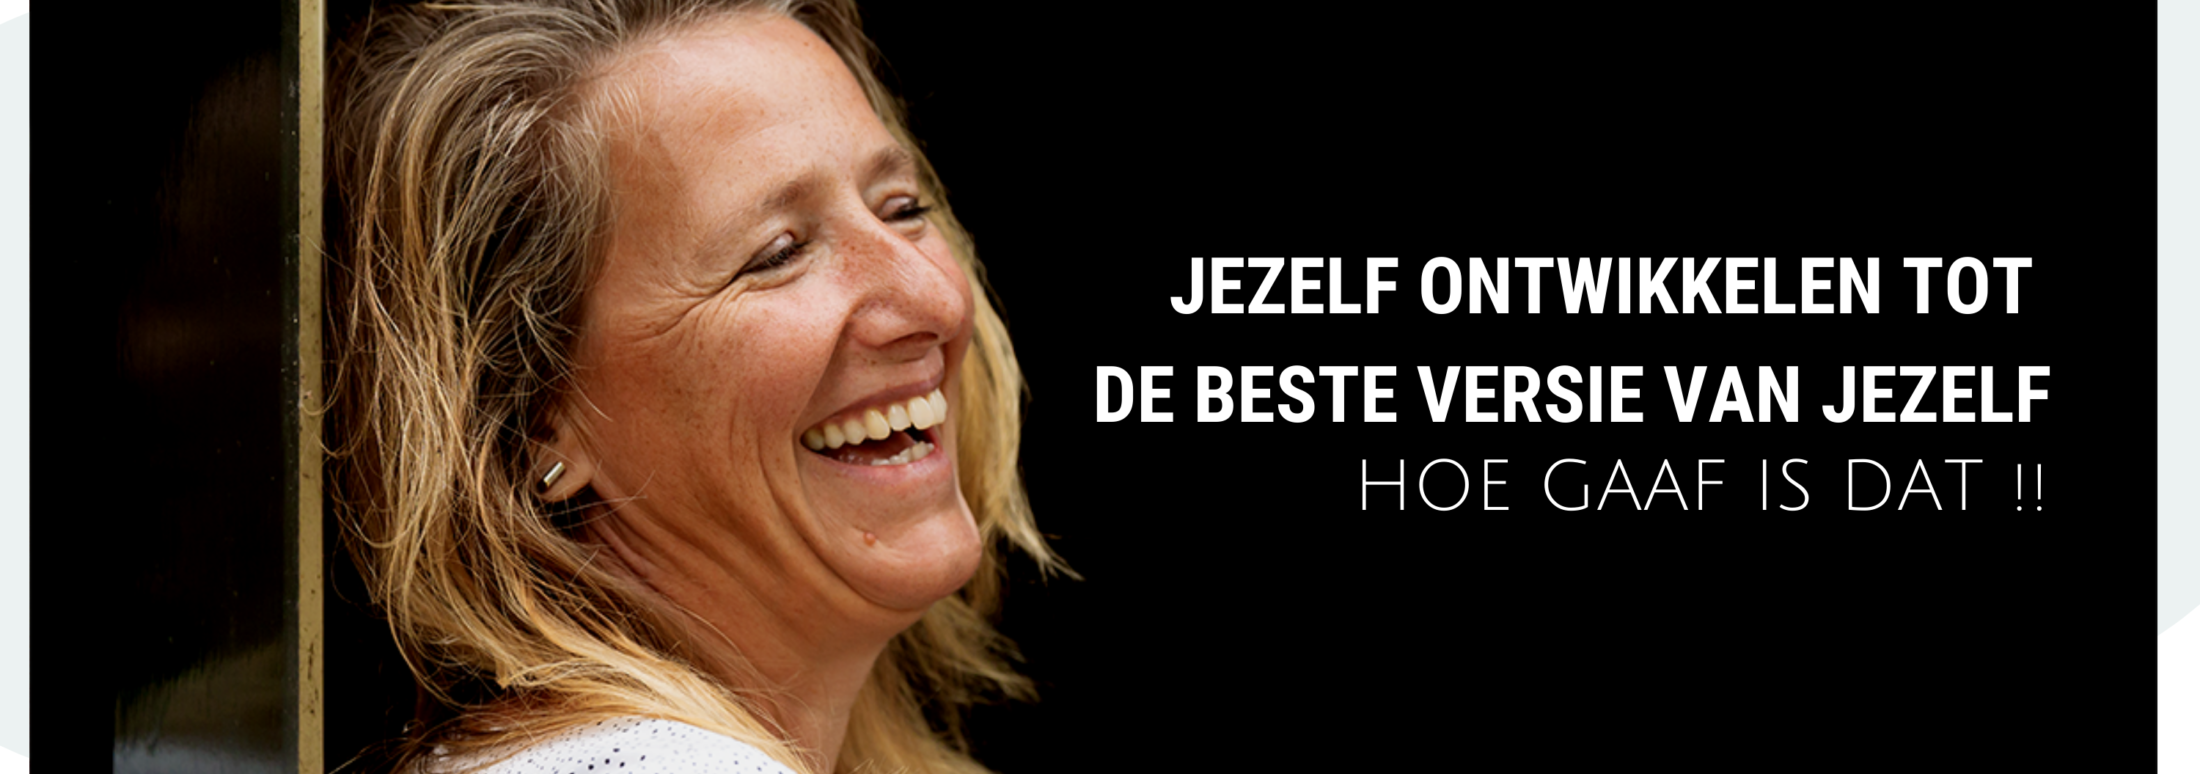 Loopbaancoaching, HSP-coach, Paardencoach